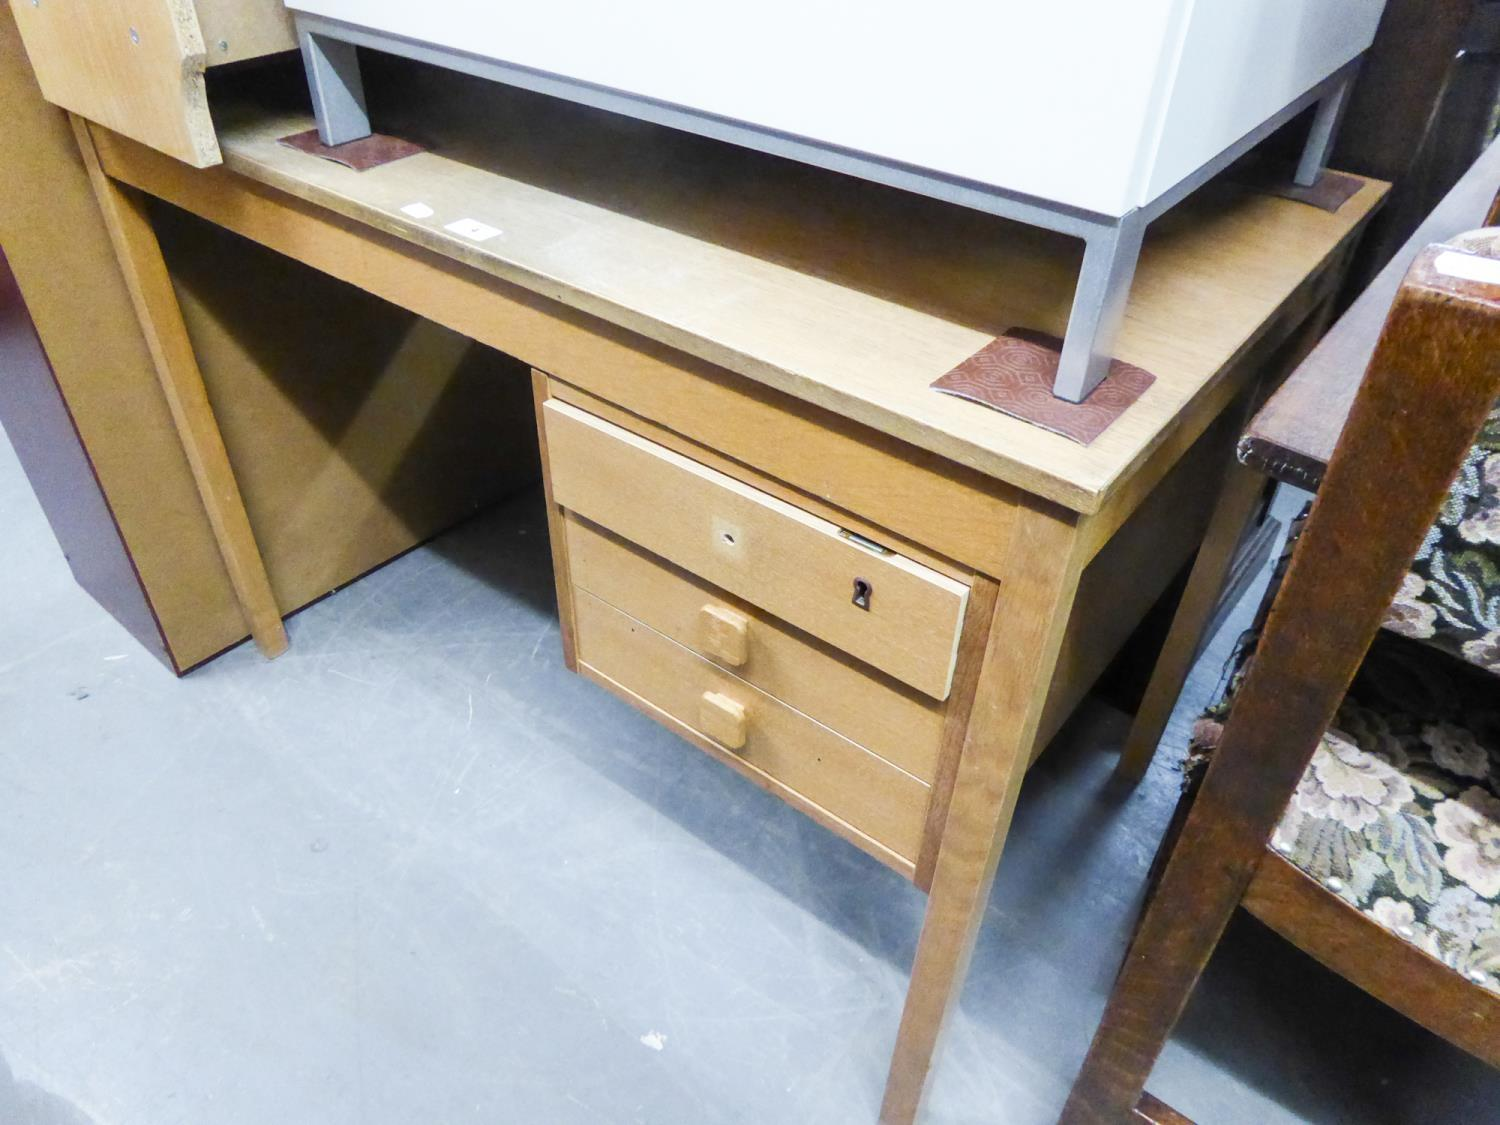 Lot 4 - A LIGHT WOOD MODERN DESK, WITH FITTED THREE DRAWER PEDESTAL AND A LIGHT WOOD MODERN BOOKCASE (2)